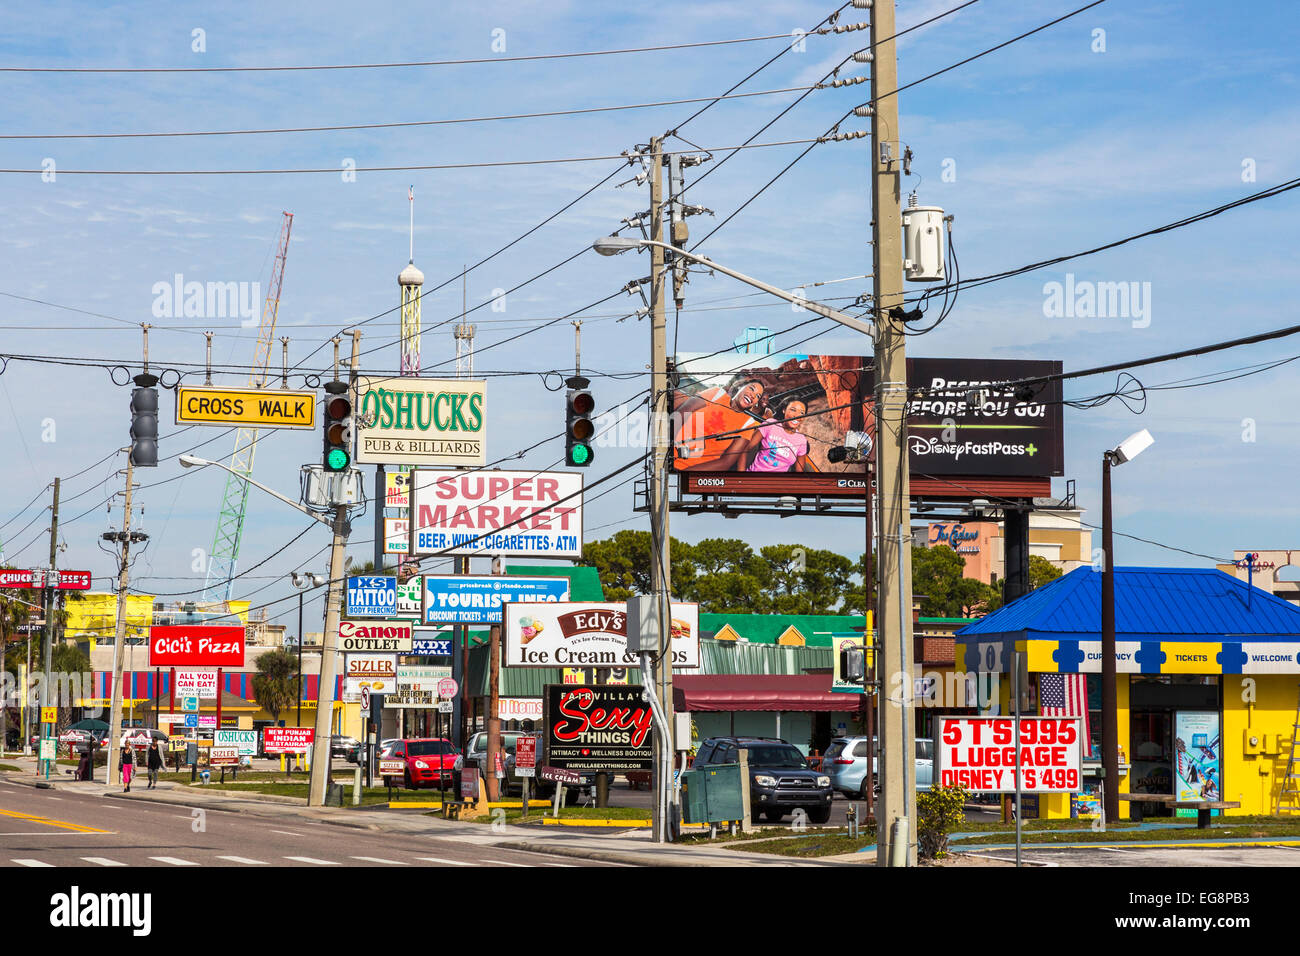 Advertising billboards on International Drive, Orlando, Florida, America - Stock Image